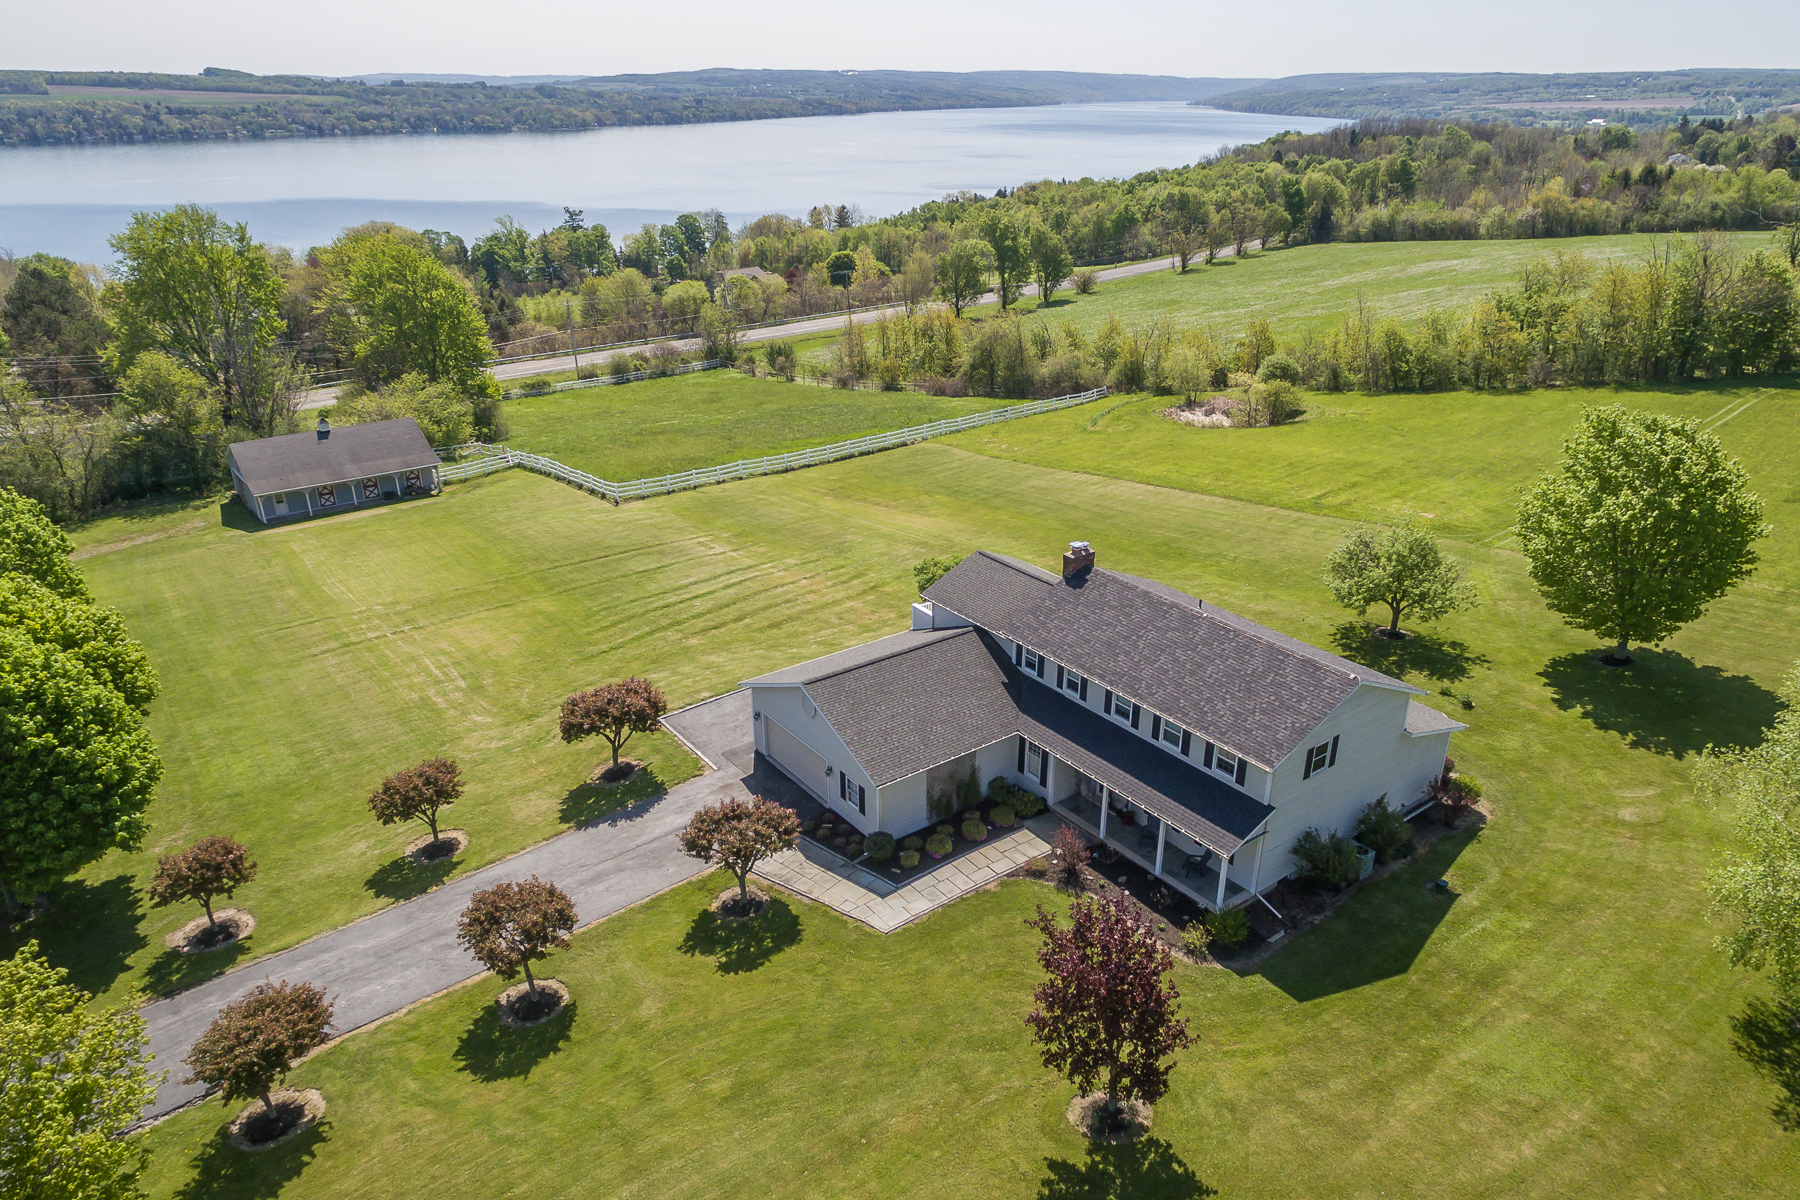 独户住宅 为 销售 在 Skaneateles Lake Views on 5.5 Acres 1300 Hencoop Rd Skaneateles, 纽约州 13152 美国